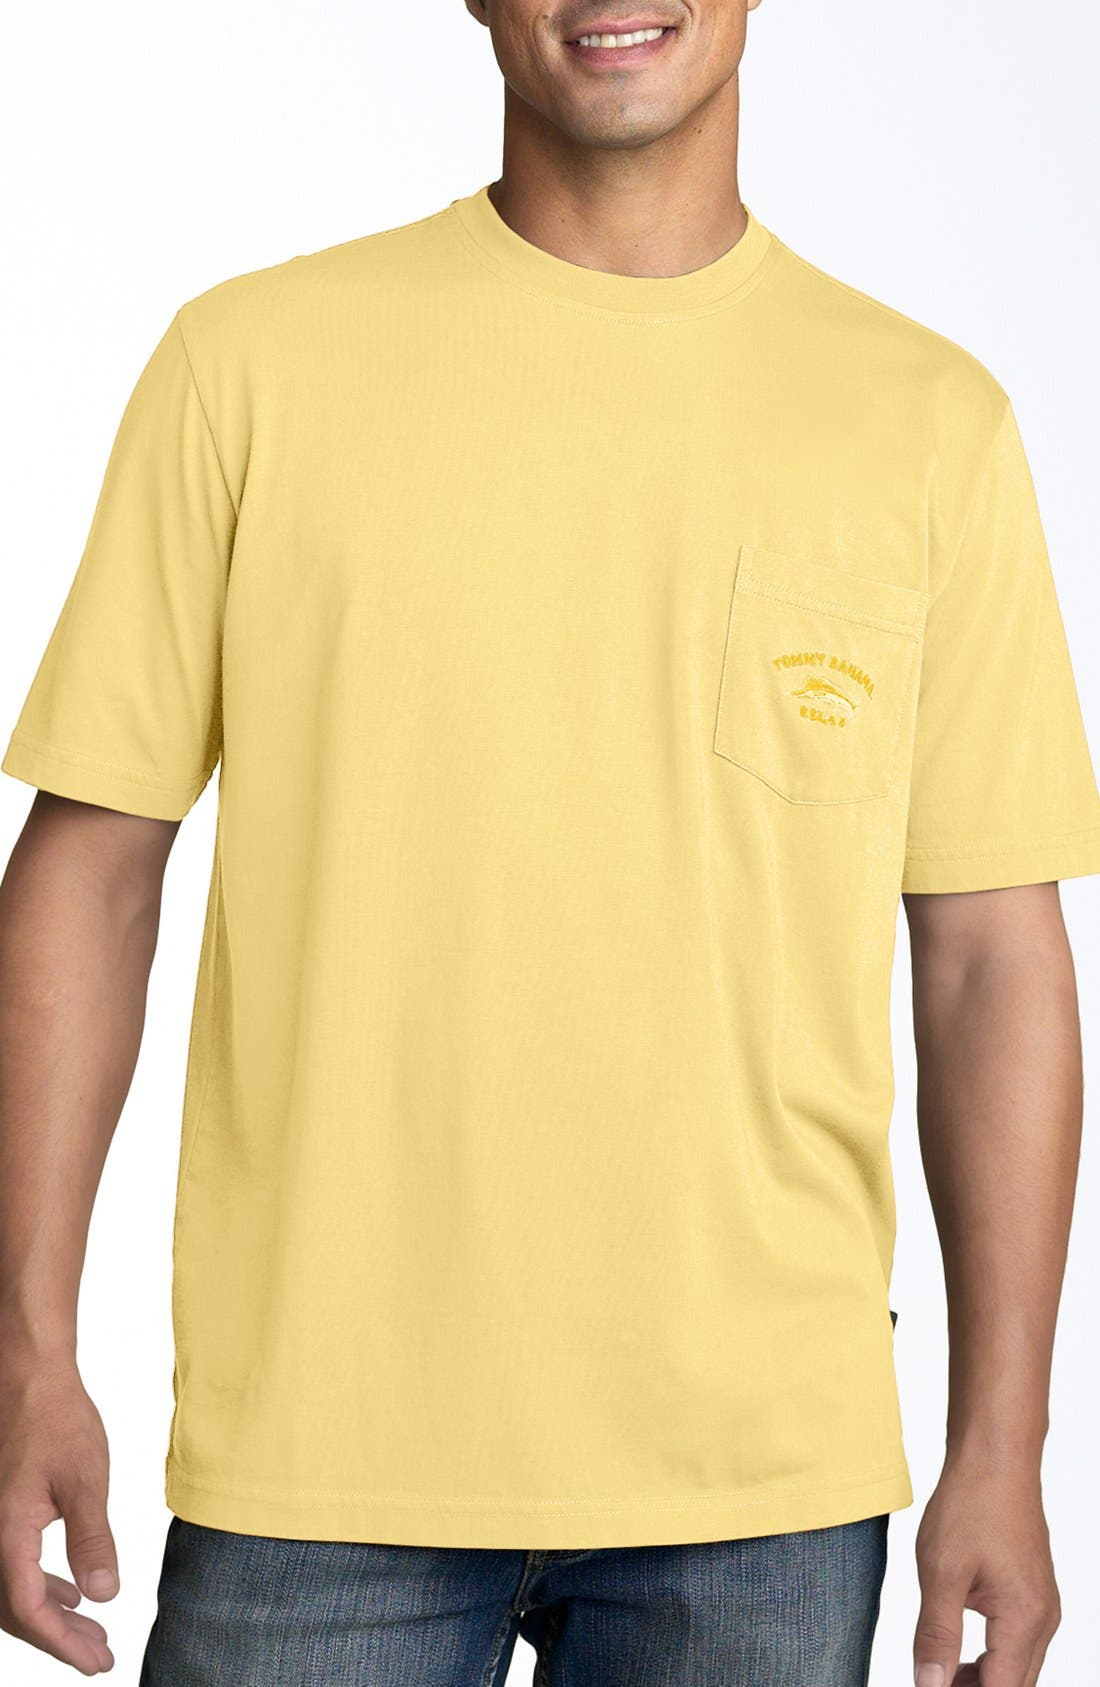 Alternate Image 1 Selected - Tommy Bahama Relax 'Bali High Tide' Regular Fit T-Shirt (Big & Tall)